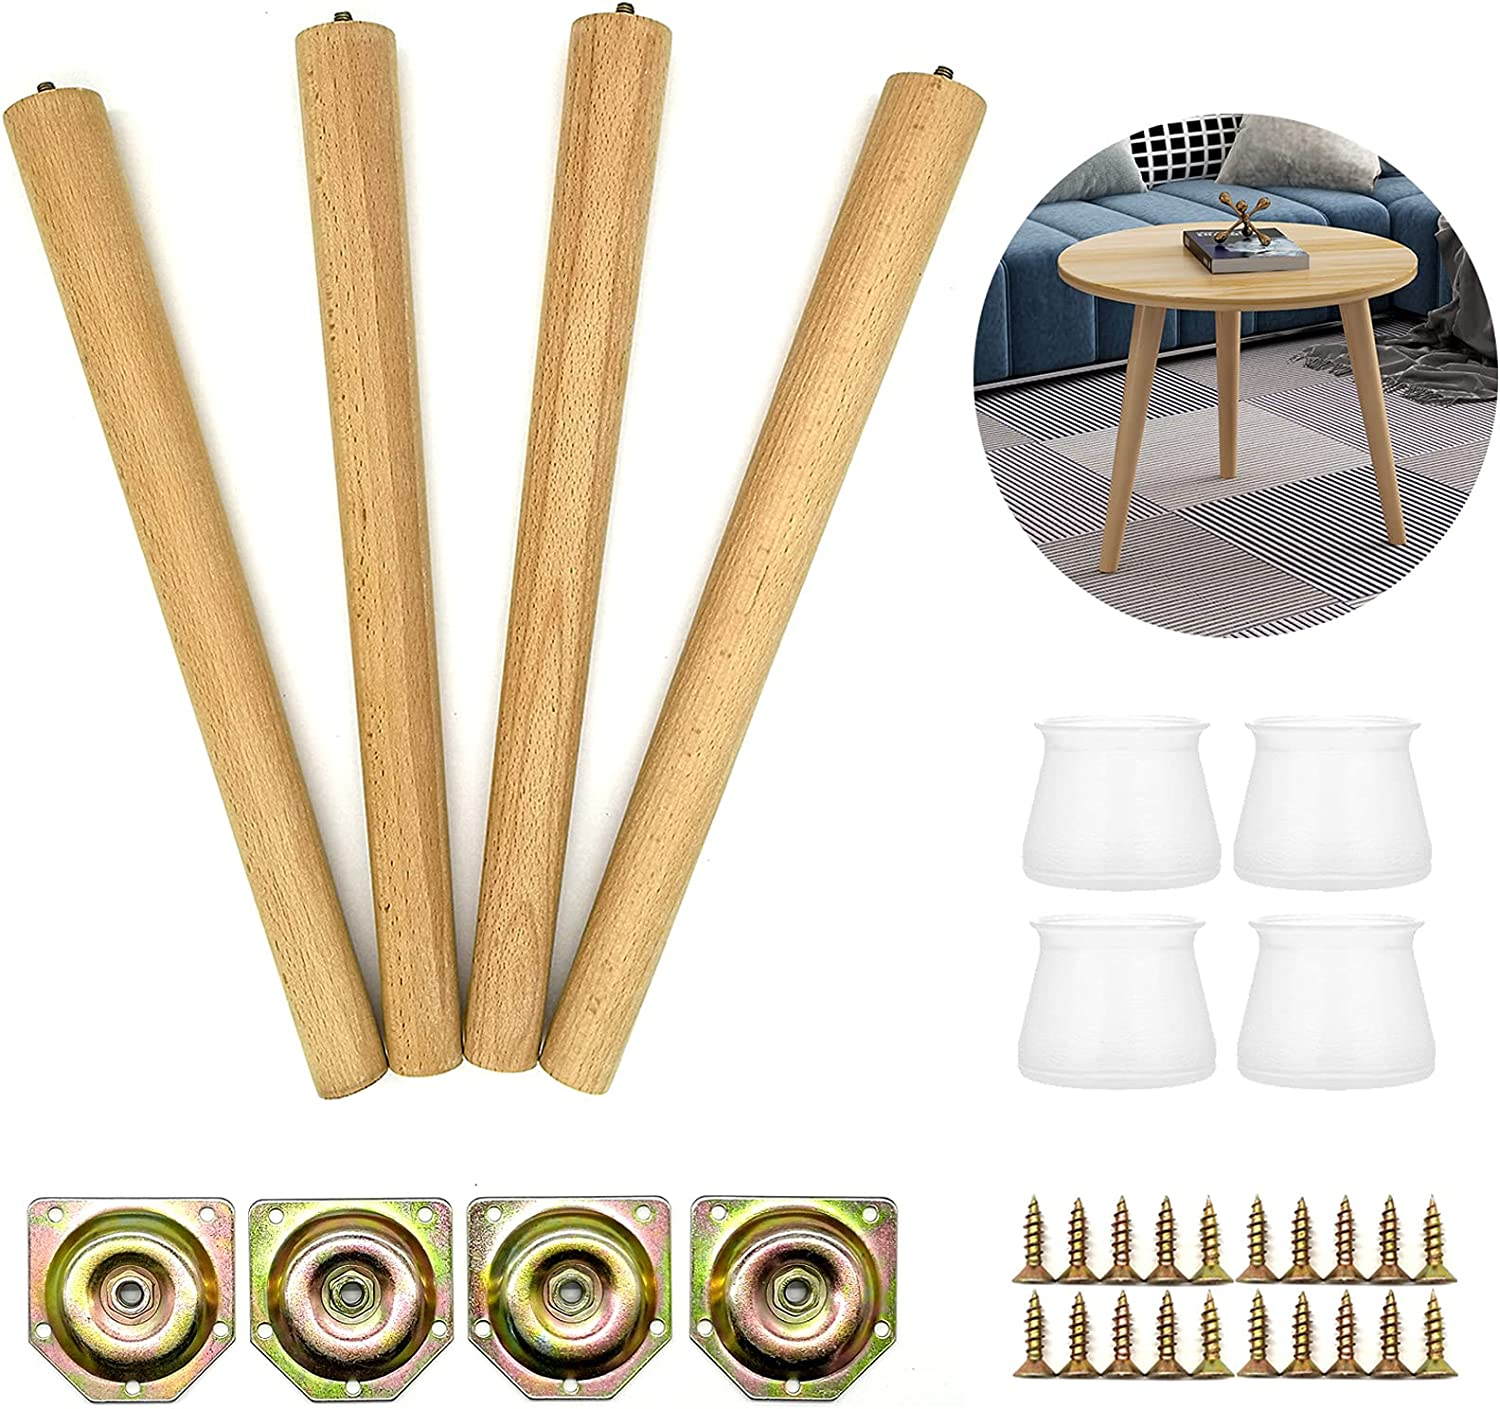 AOLY Wooden Table Legs, 16 inch Beech Wood Furniture Replacement Legs, Ideal for Coffee Table, Mid-Century Modern Table, Chair Legs, Night Stand Legs, Include Angled Mounting Plates, Set of 4